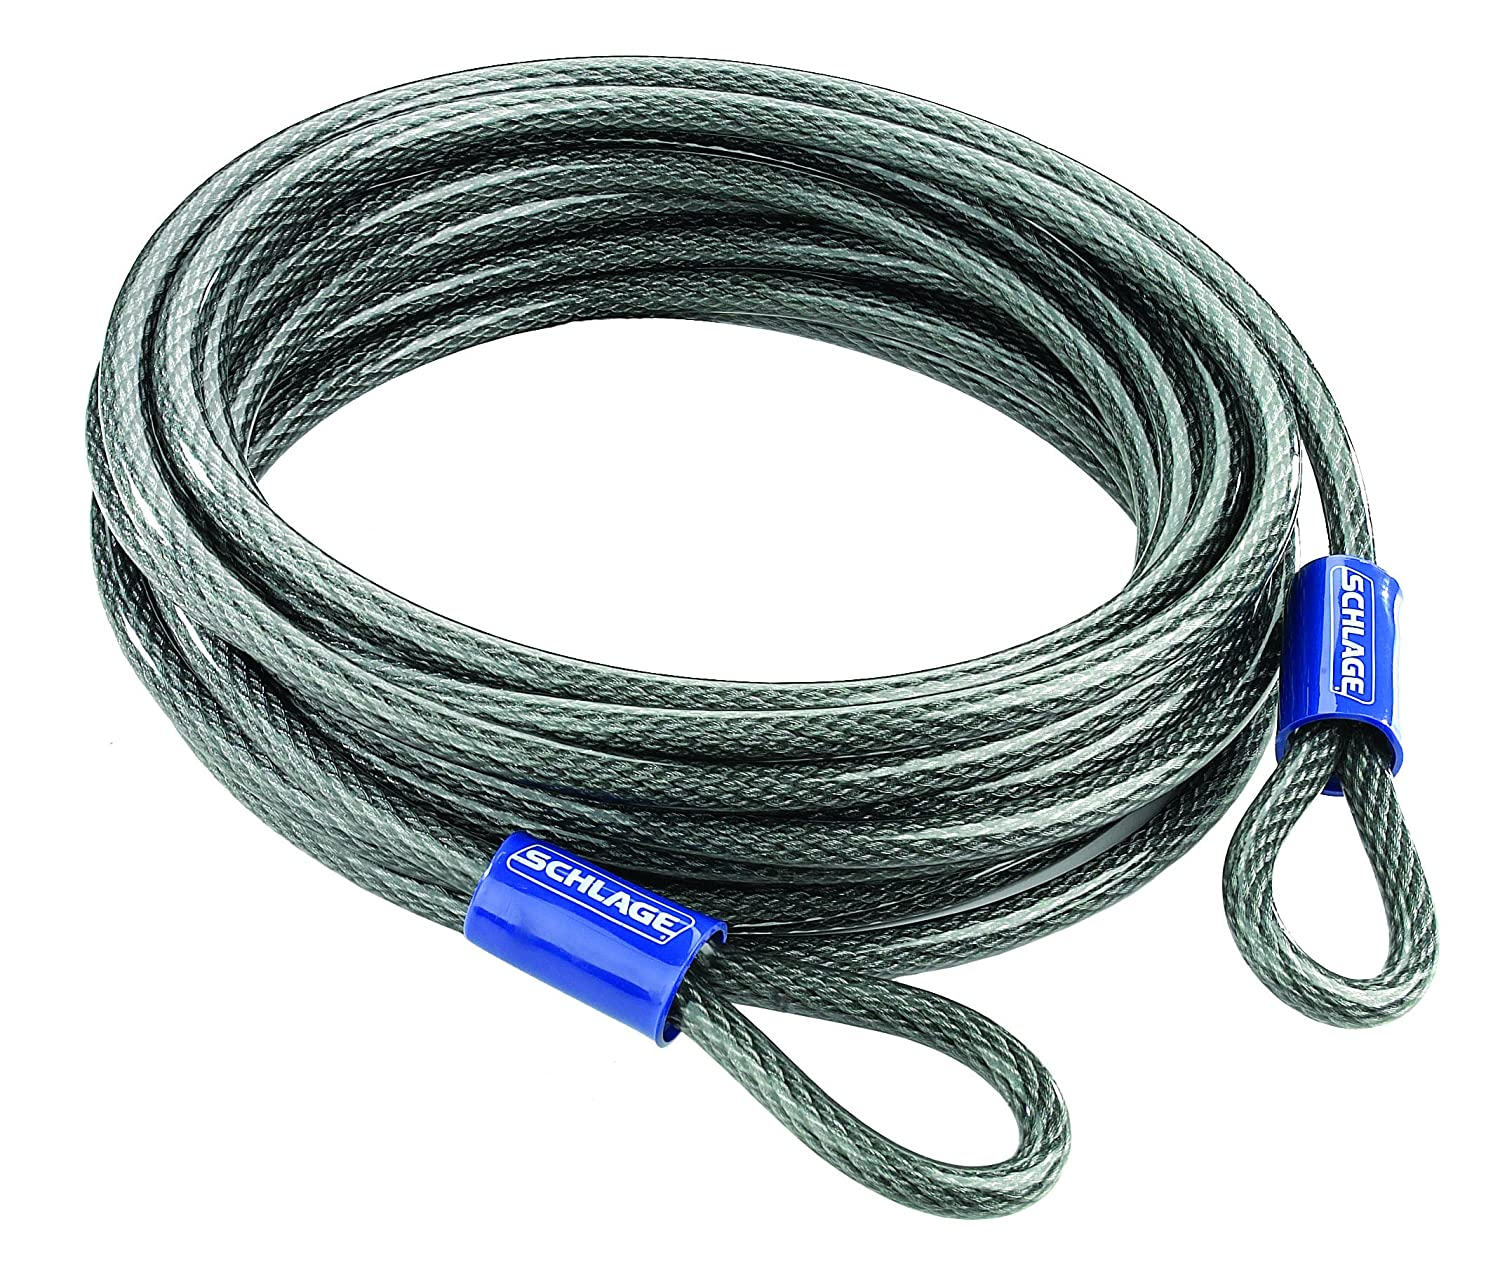 Very Flexible Cable : Schlage flexible steel cable foot by inch